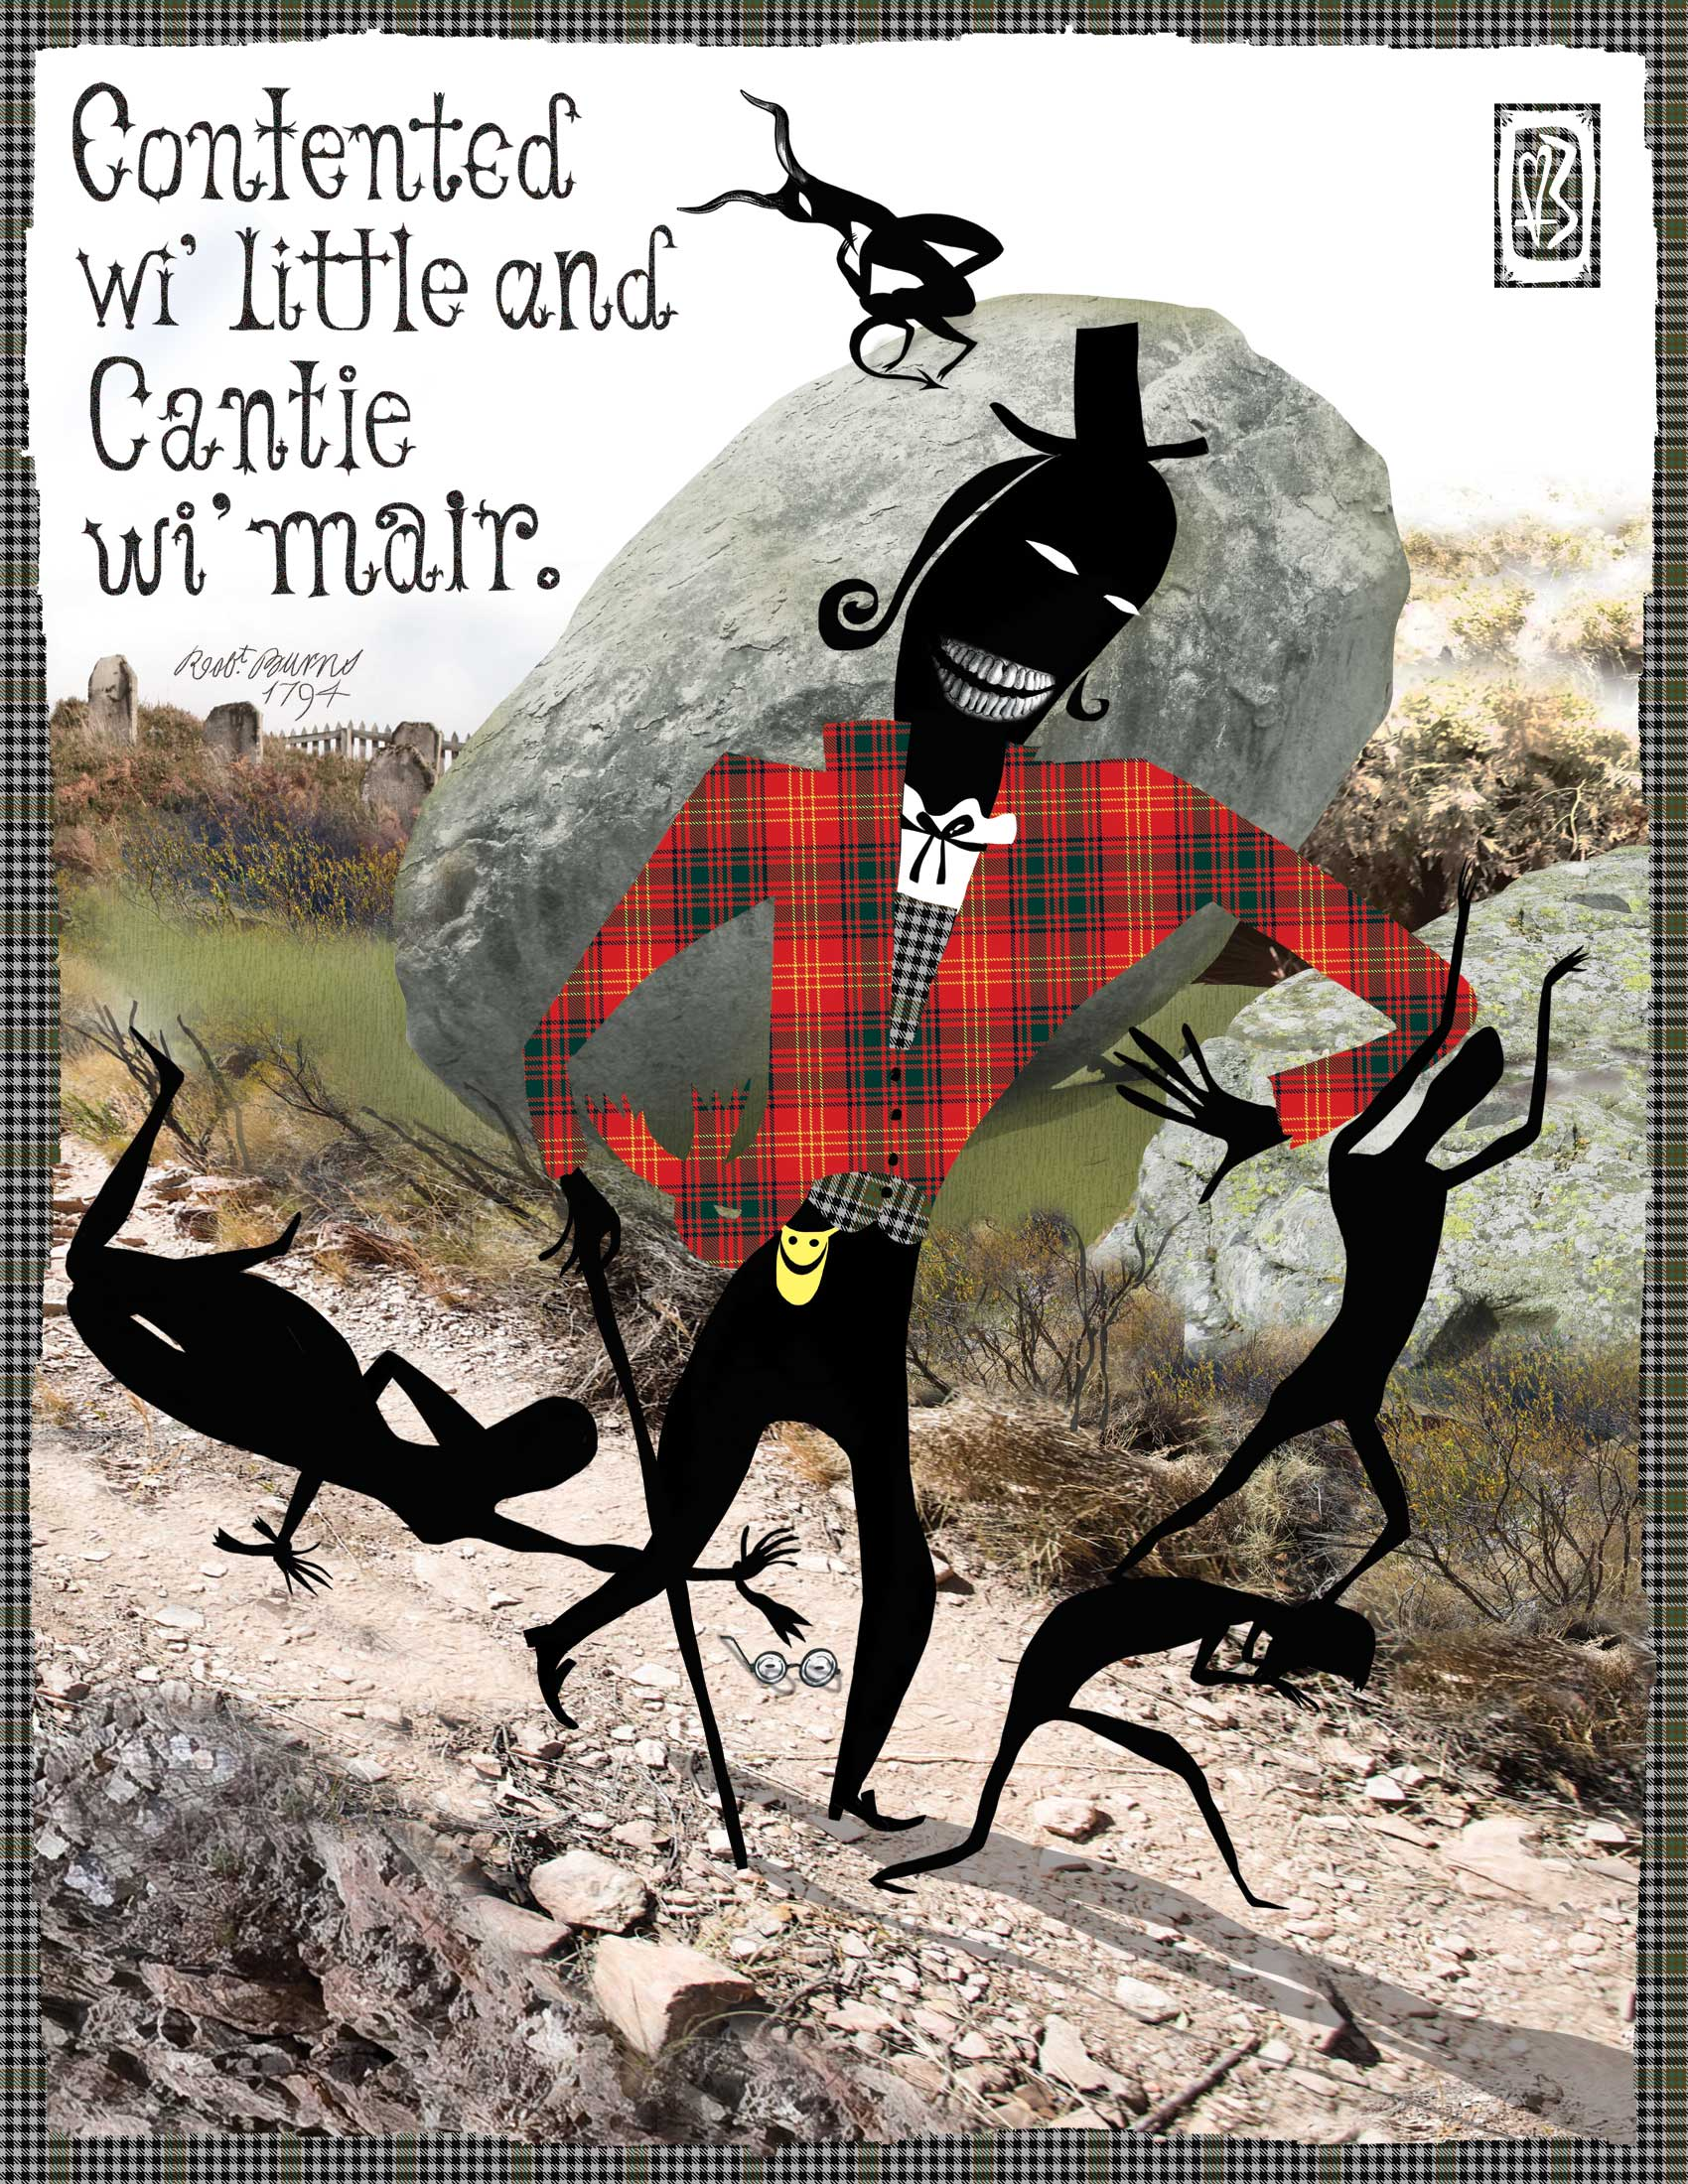 Contented wi' little, and cantie wi' mair,